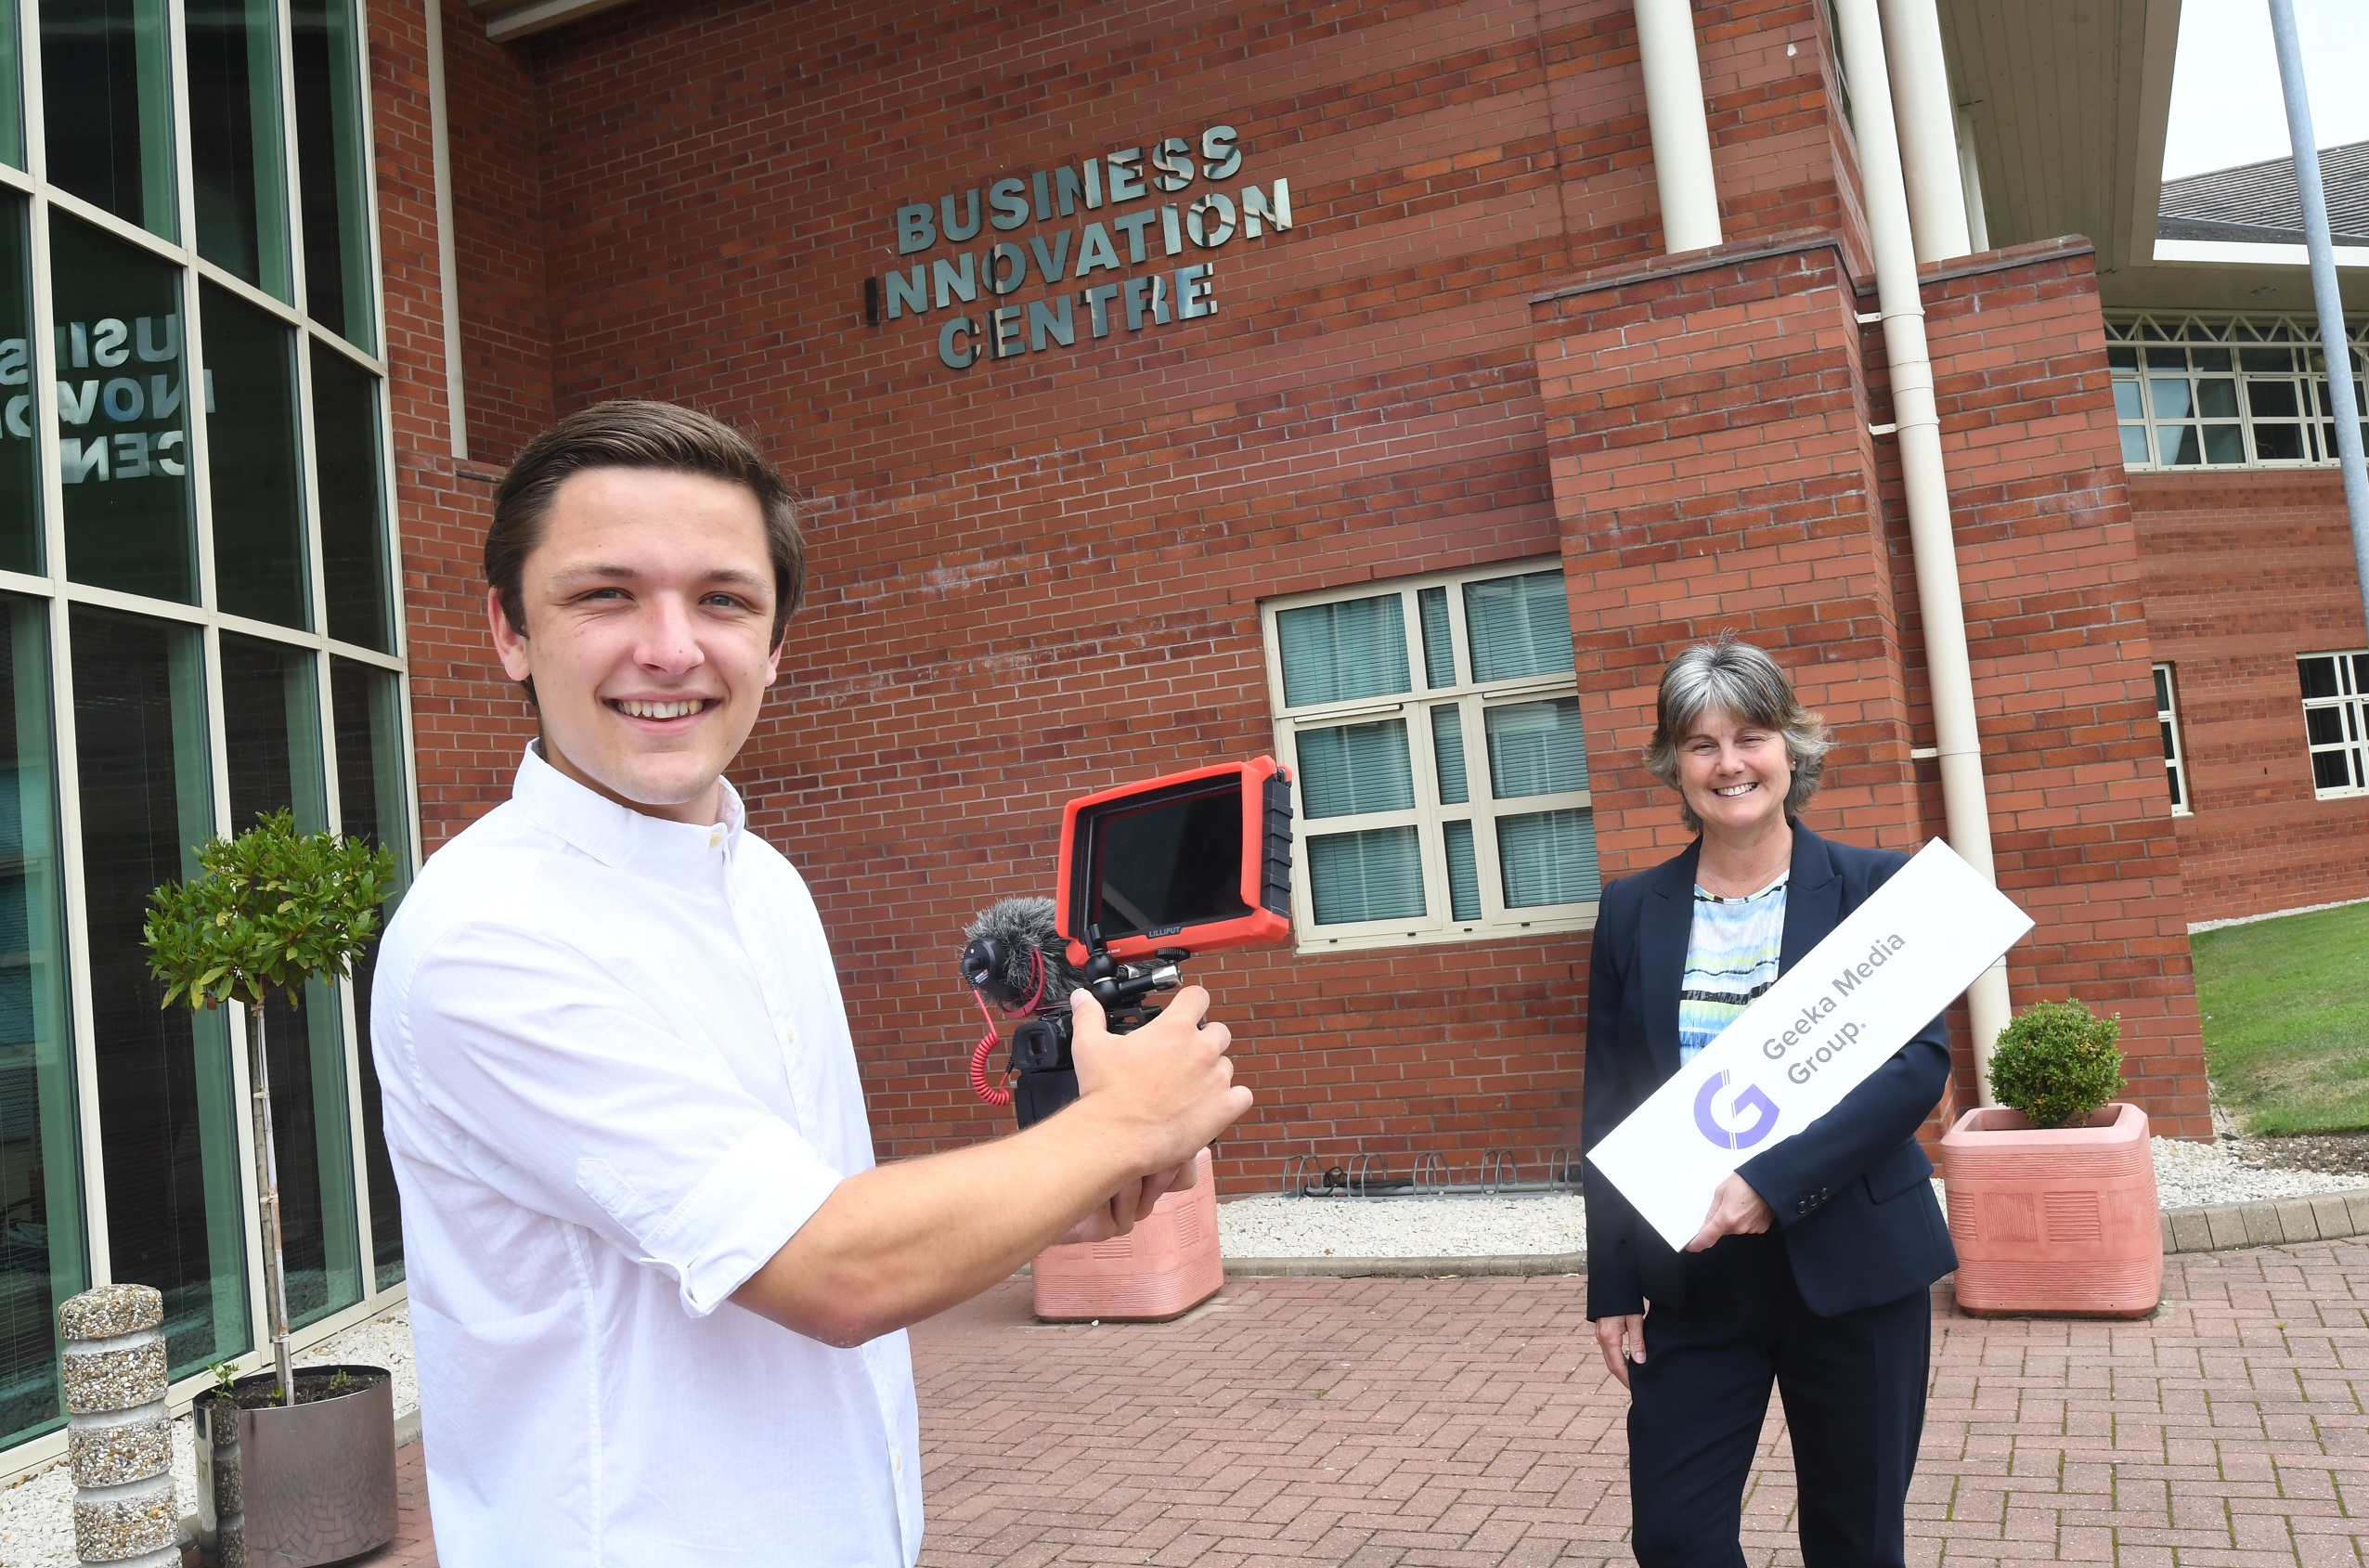 Teenage entrepreneur from Coventry sets up office in the city